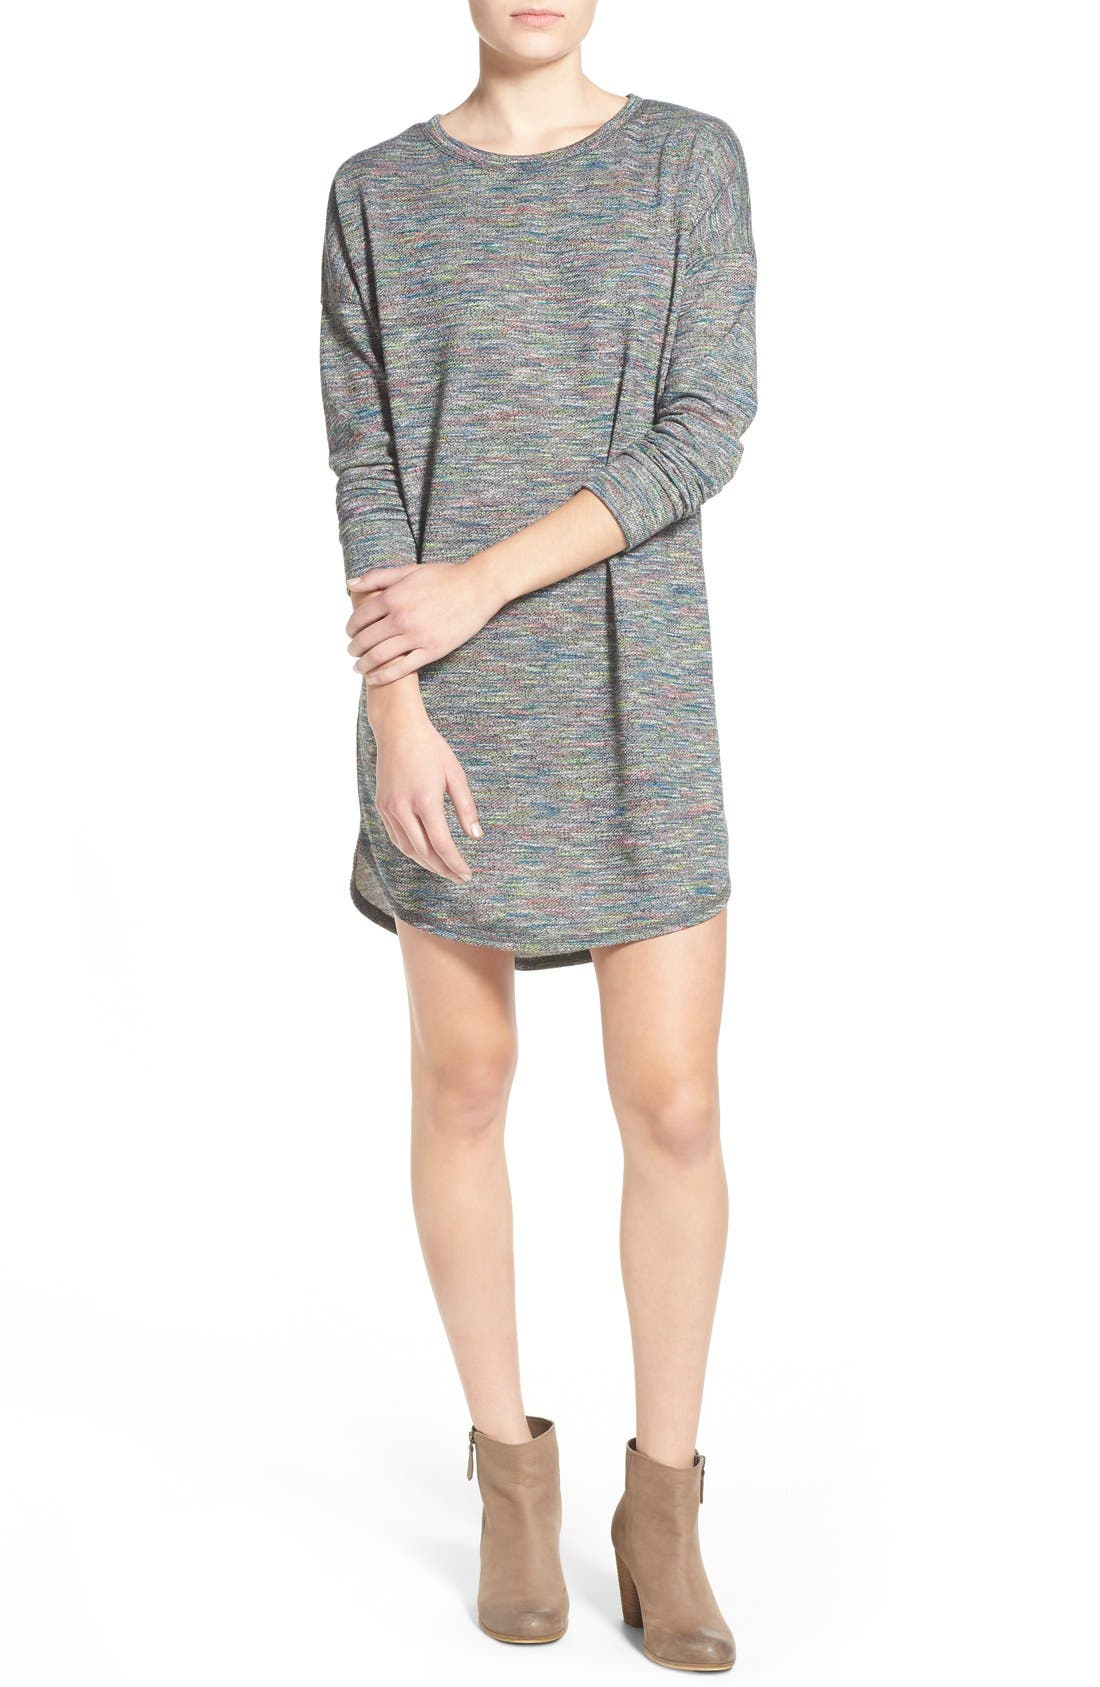 Main Image - One Clothing Space Dye Sweater Dress